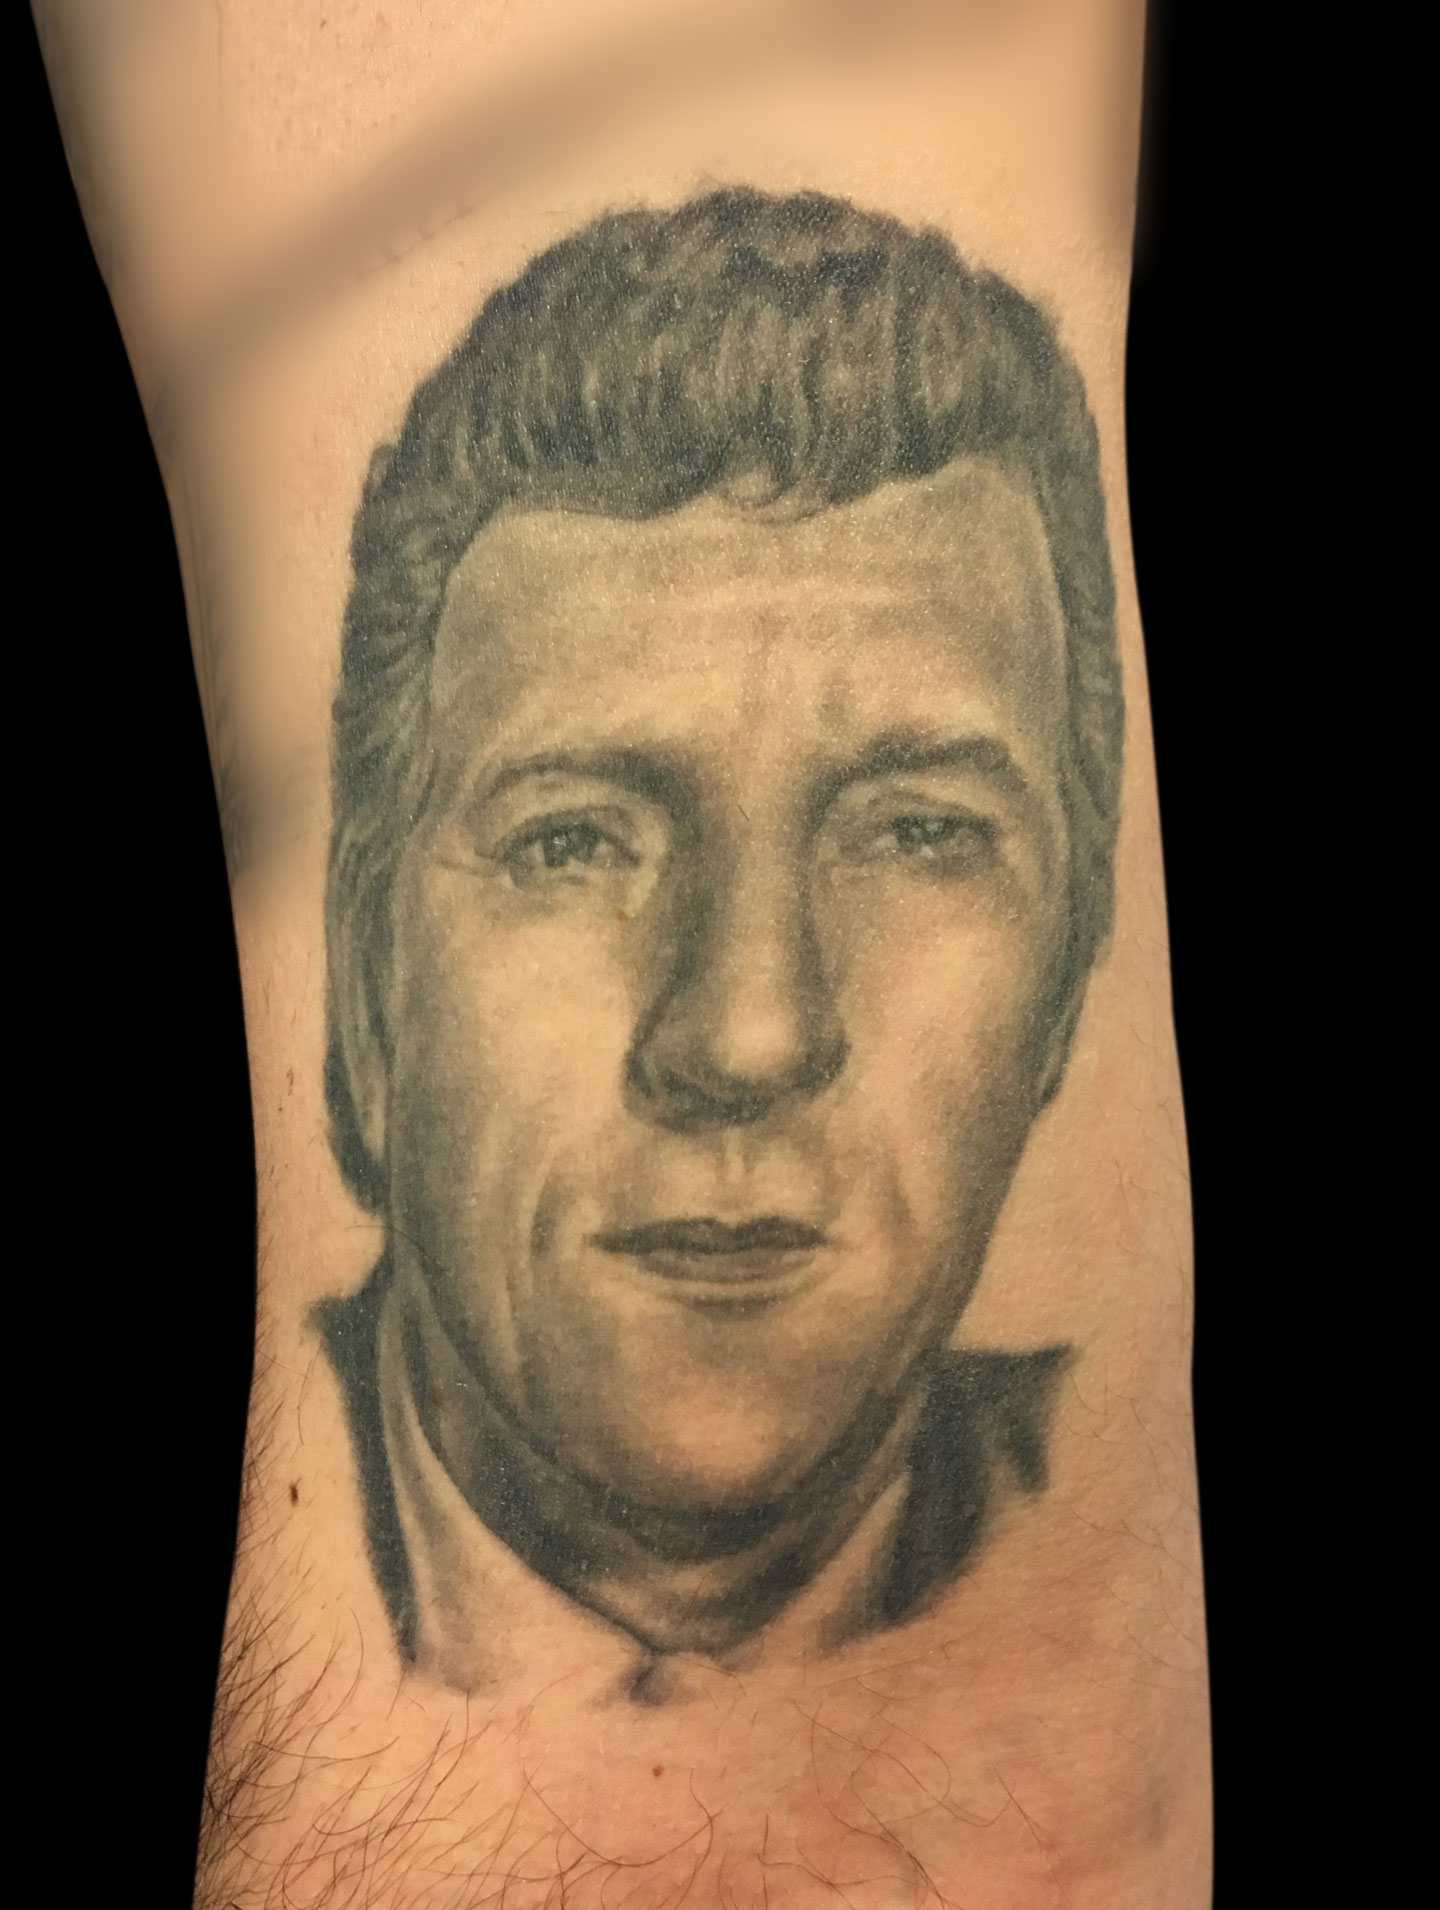 Black and Grey Memorial Portrait Tattoo of Brother, (tattoo is healed and 4 years old in this photo)